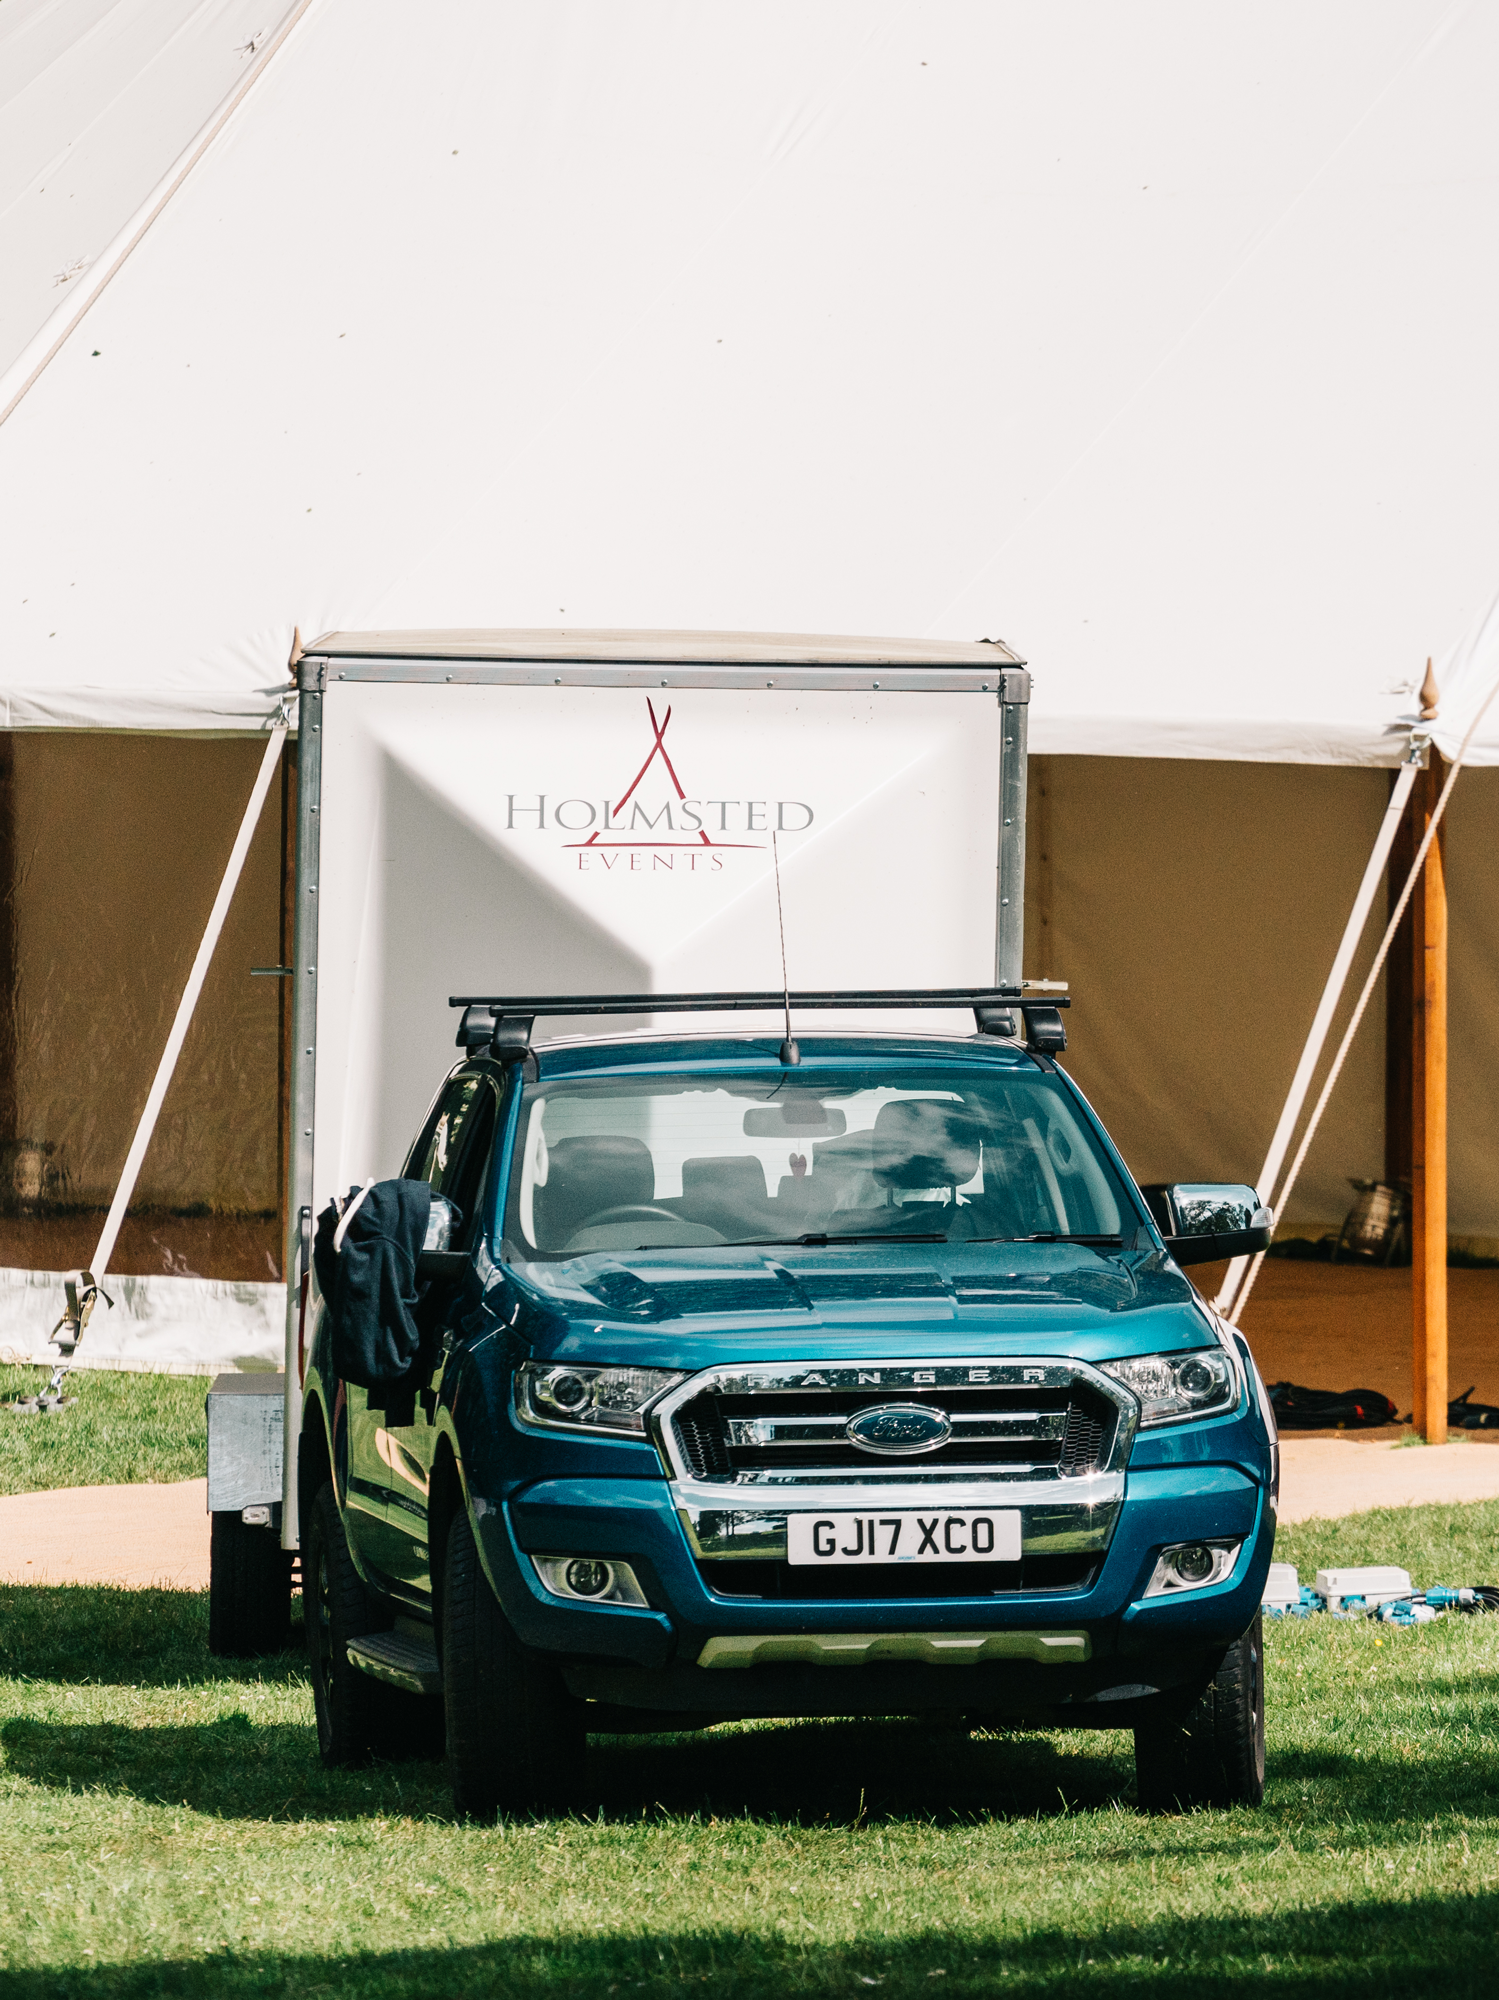 Holmsted Events service vehicle